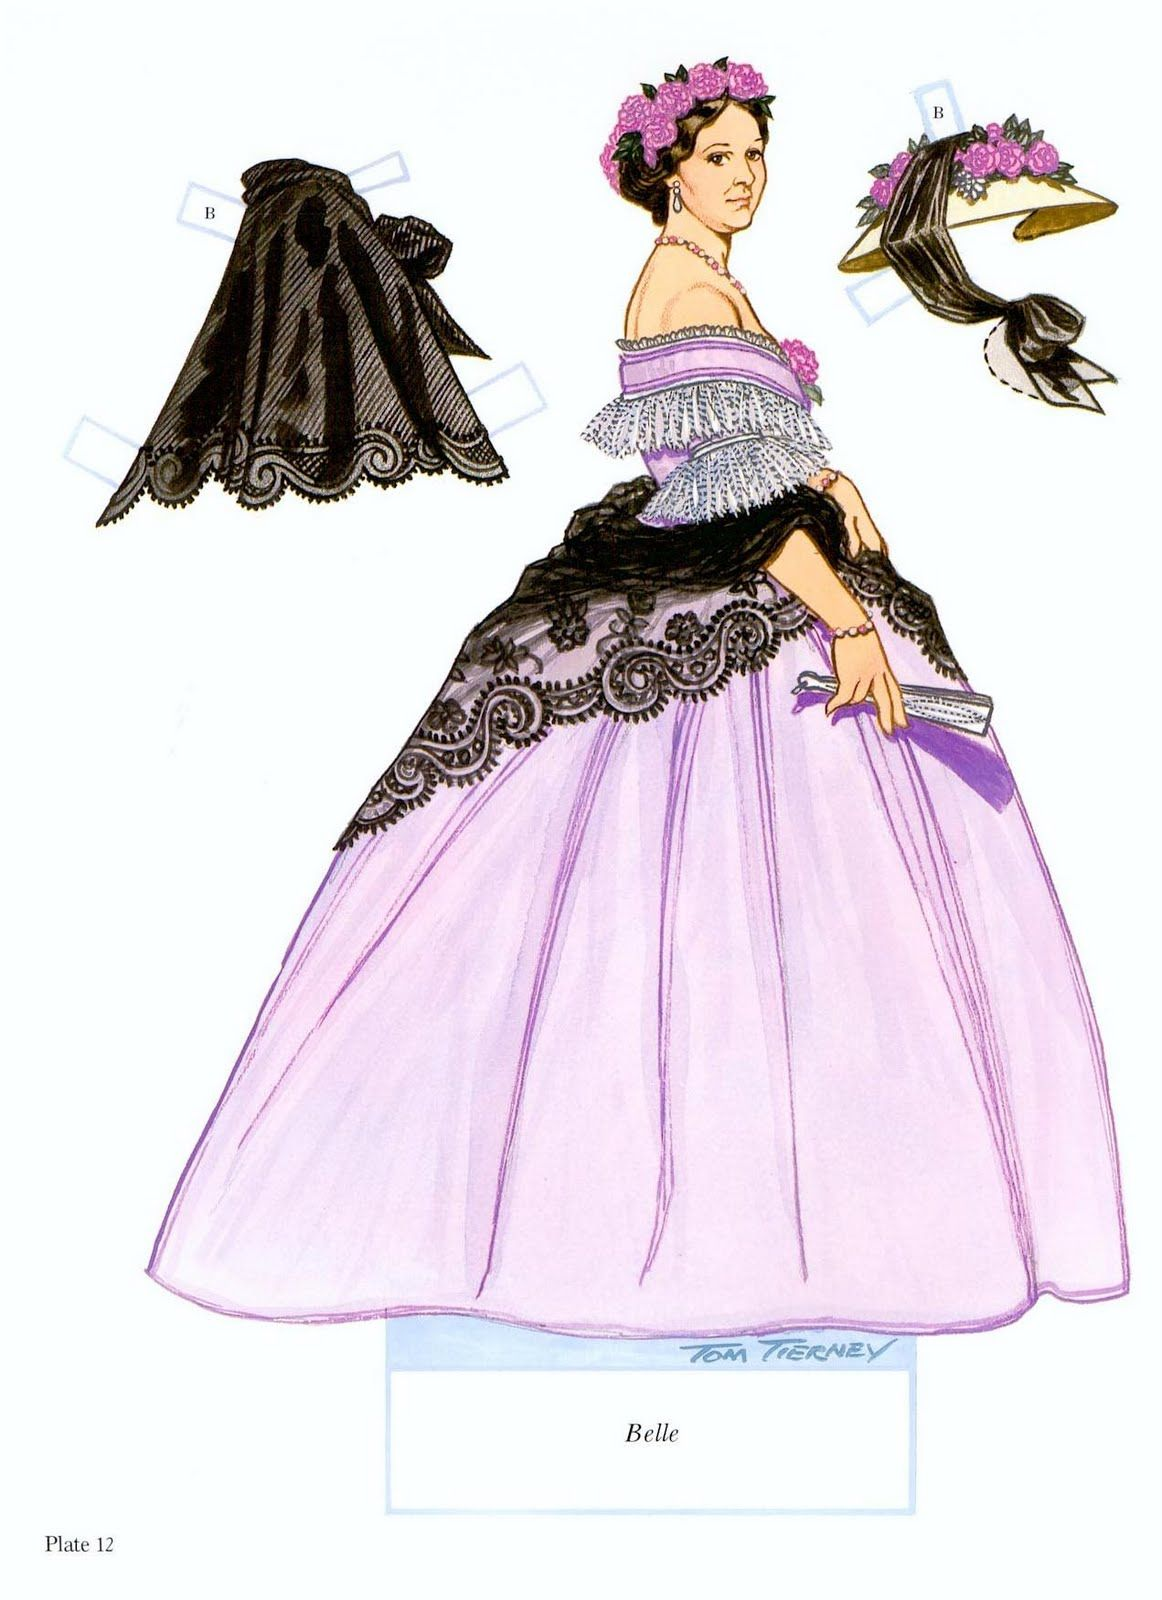 Tom tierney colonial fashions paper dolls - Southern Belles Paper Dolls By Tom Tierney 14